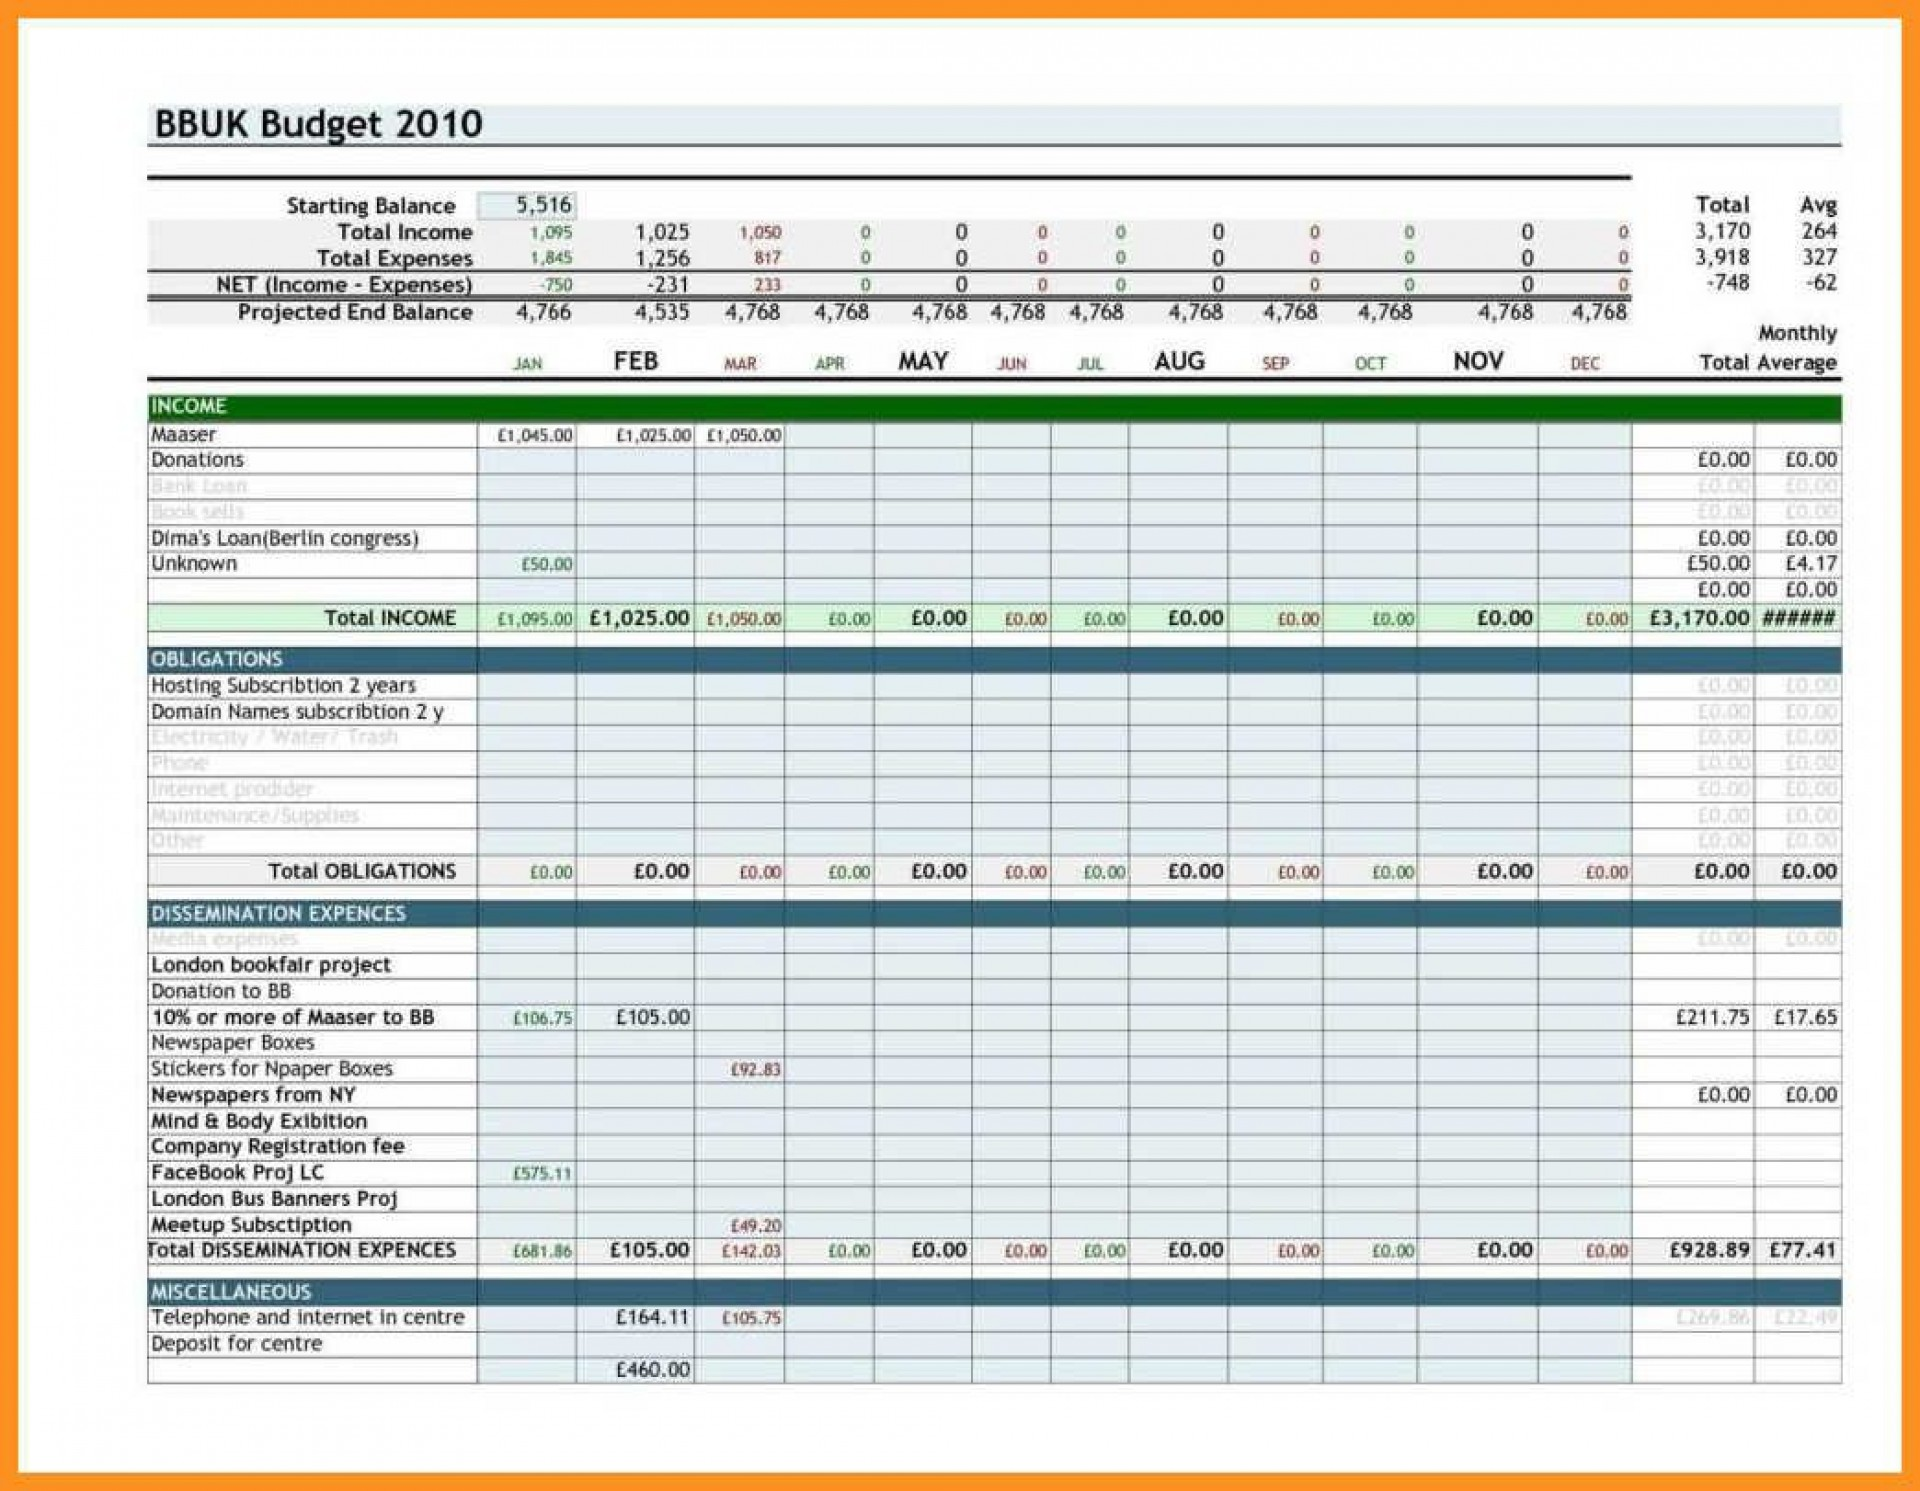 004 Awful Personal Financial Template Excel Inspiration  Statement Budget India Expense Report1920